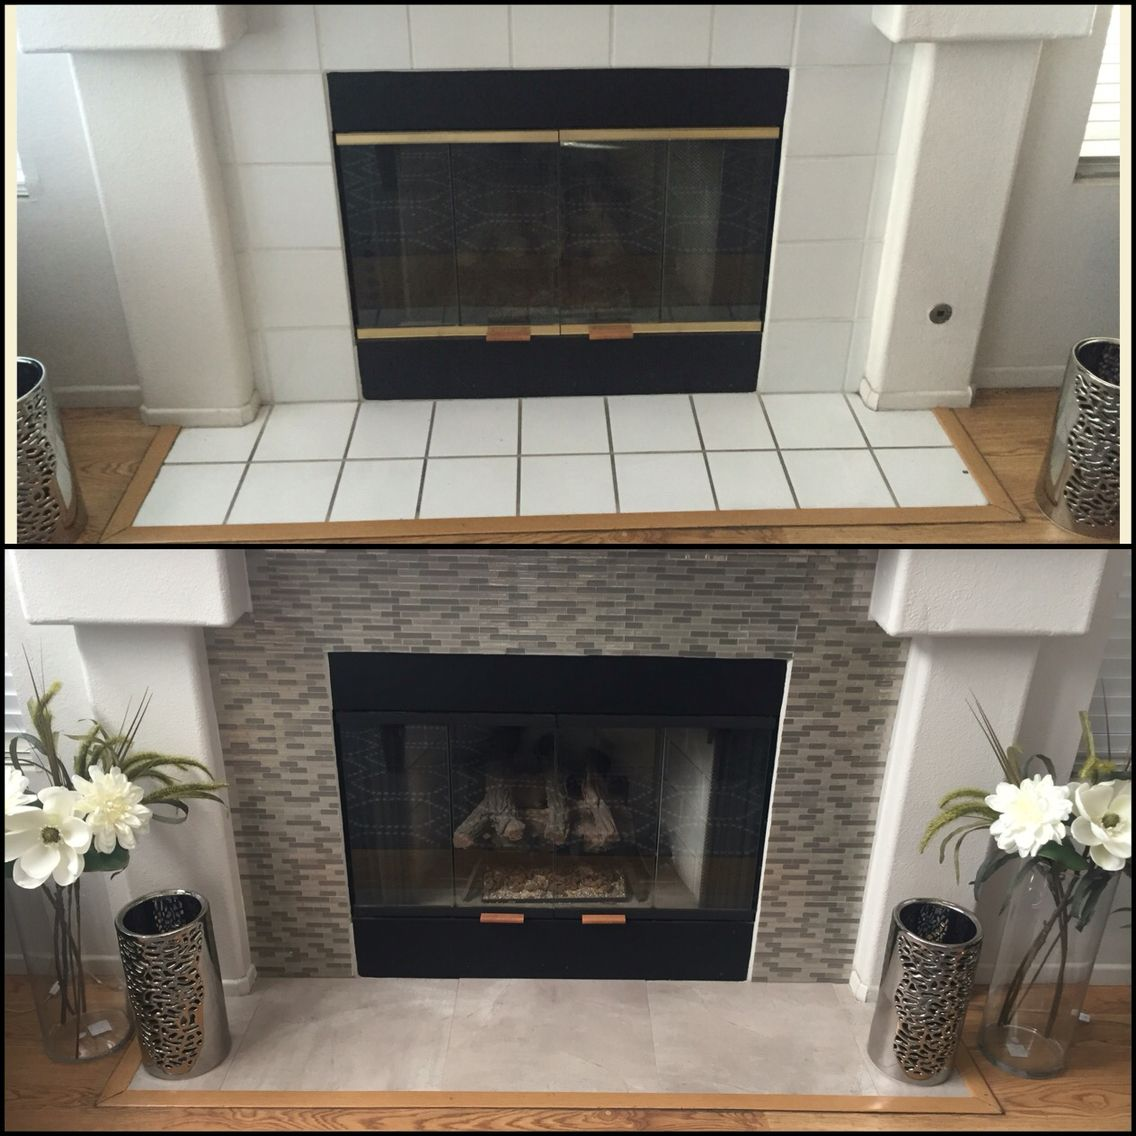 Luxury Fireplace Tile Ideas Perfect For Your Home Fireplace Homedesigns Diy Fireplace Makeover Home Fireplace Fireplace Makeover